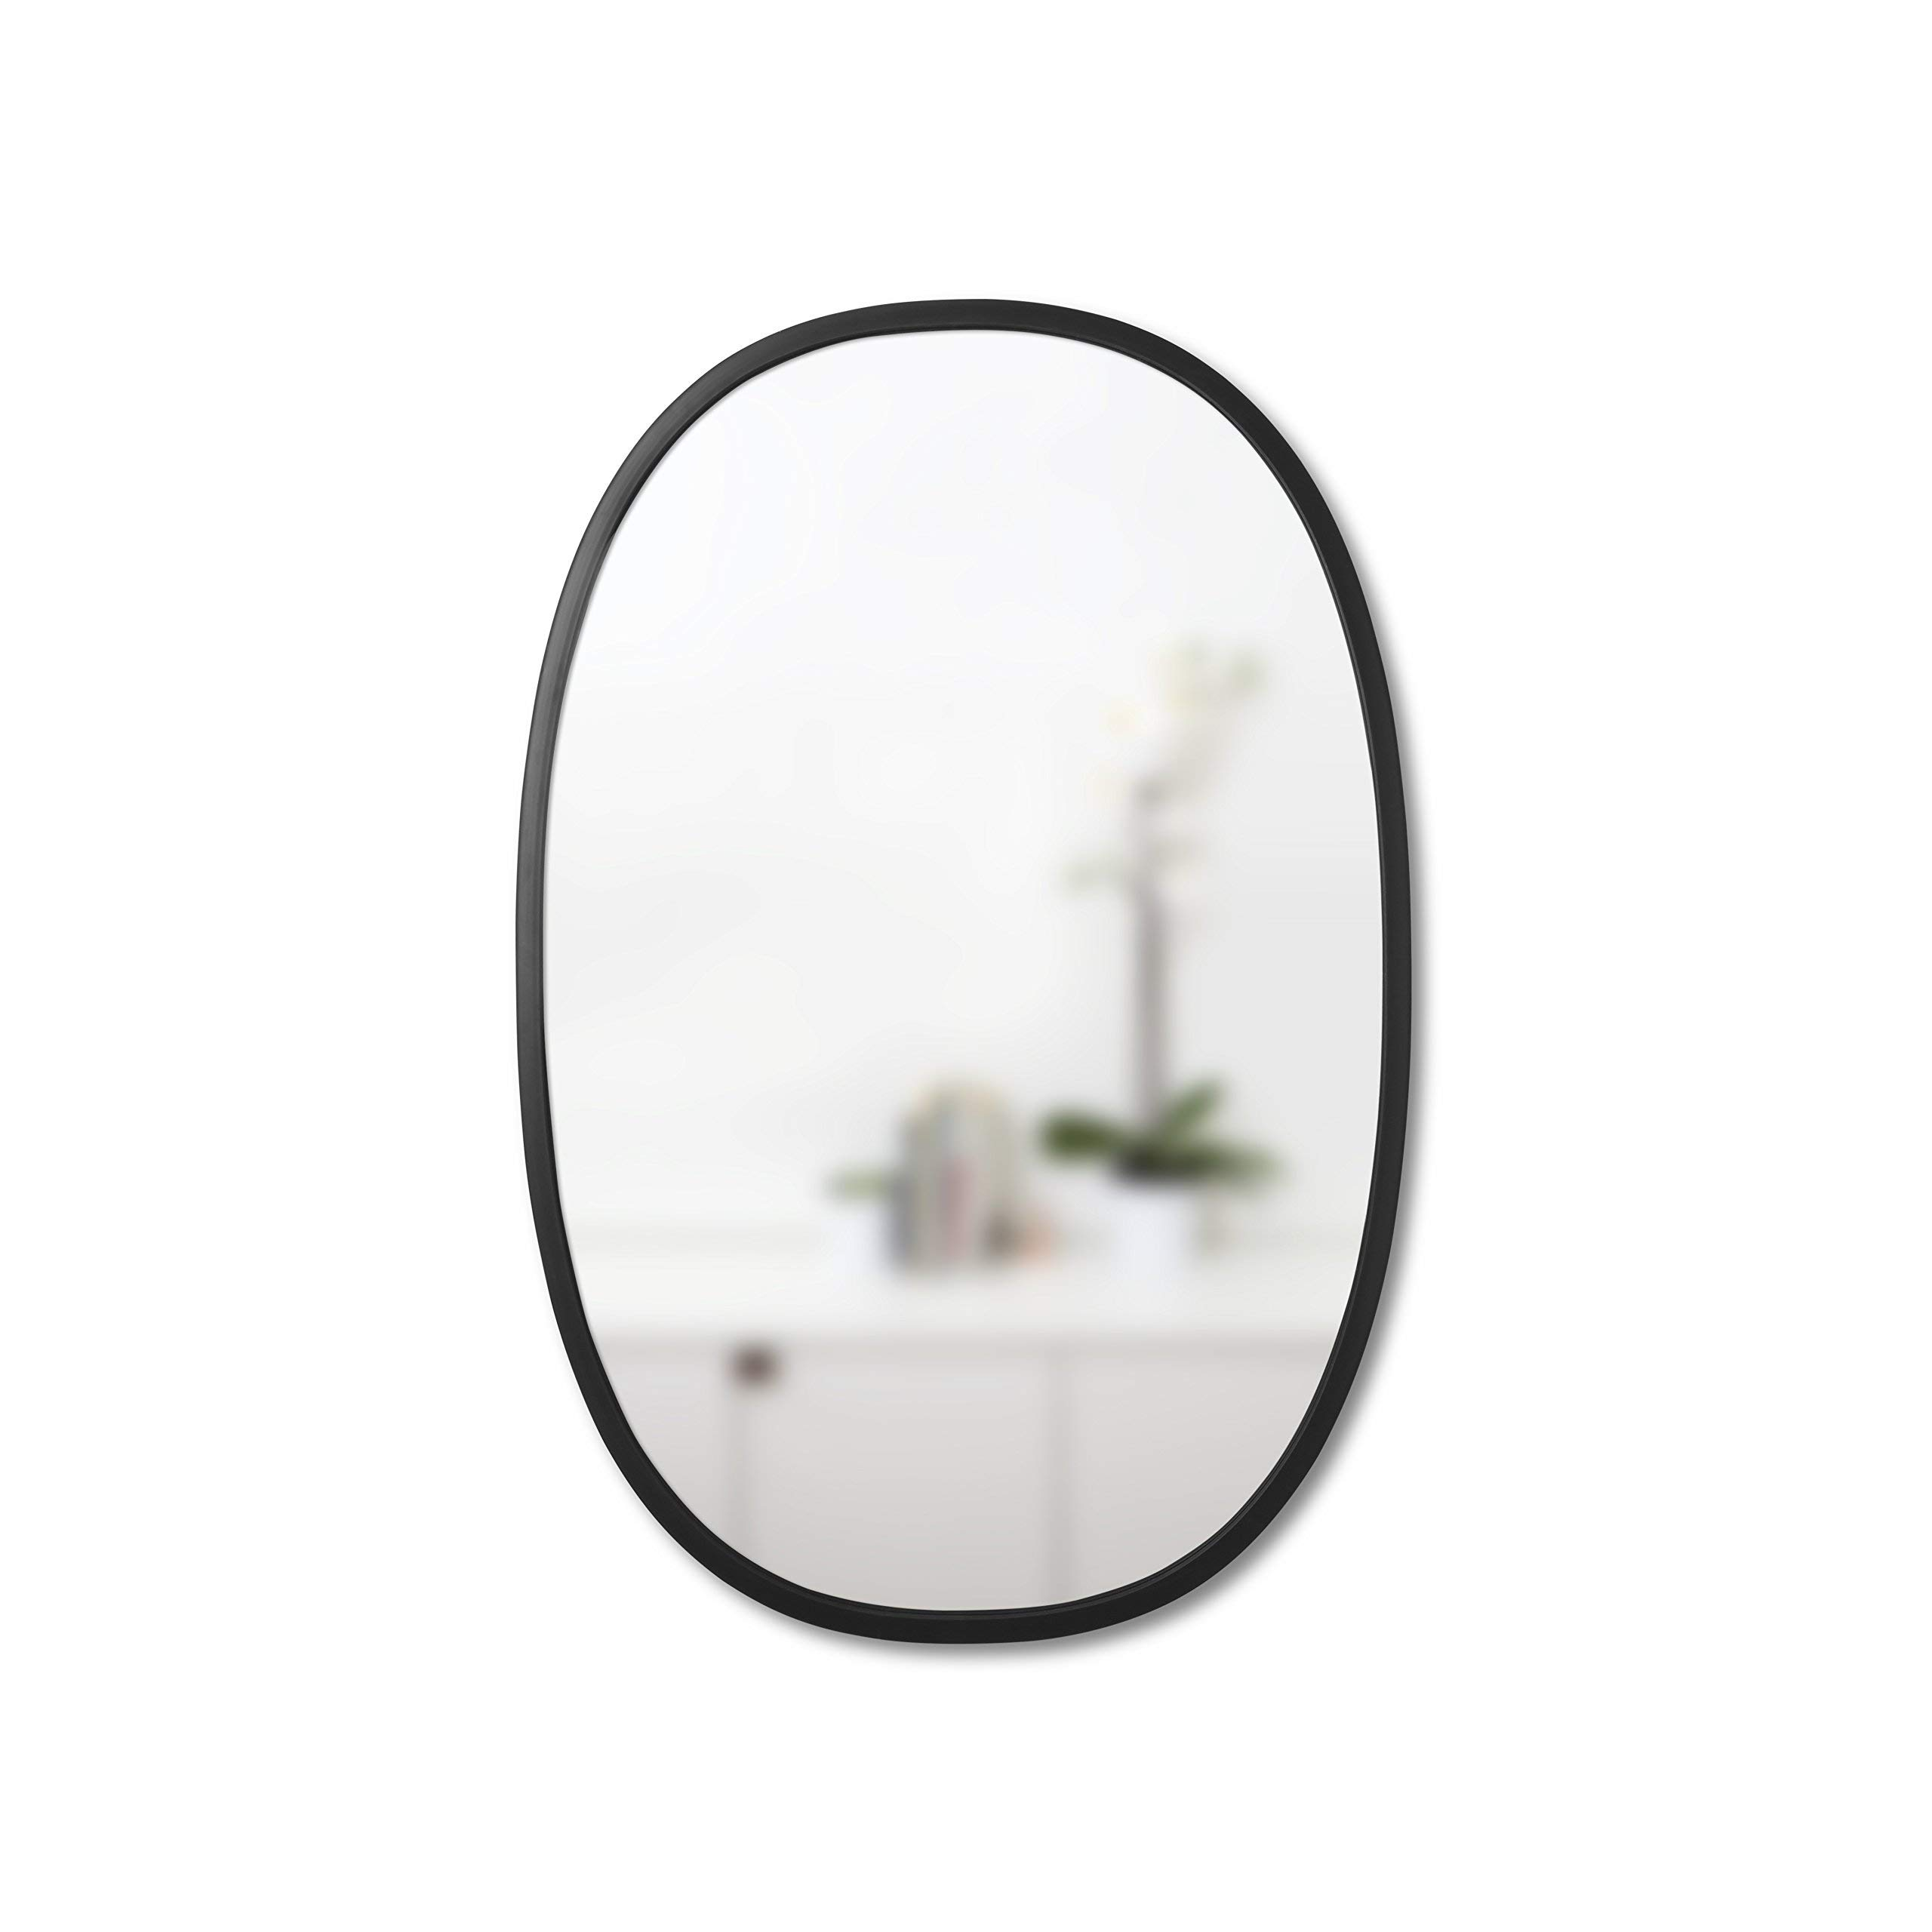 """Umbra Hub 24 x 36"""" Oval Wall Mirror With Rubber Frame, Modern Room Decor for Entryways, Washrooms, Living Rooms and More, Black"""